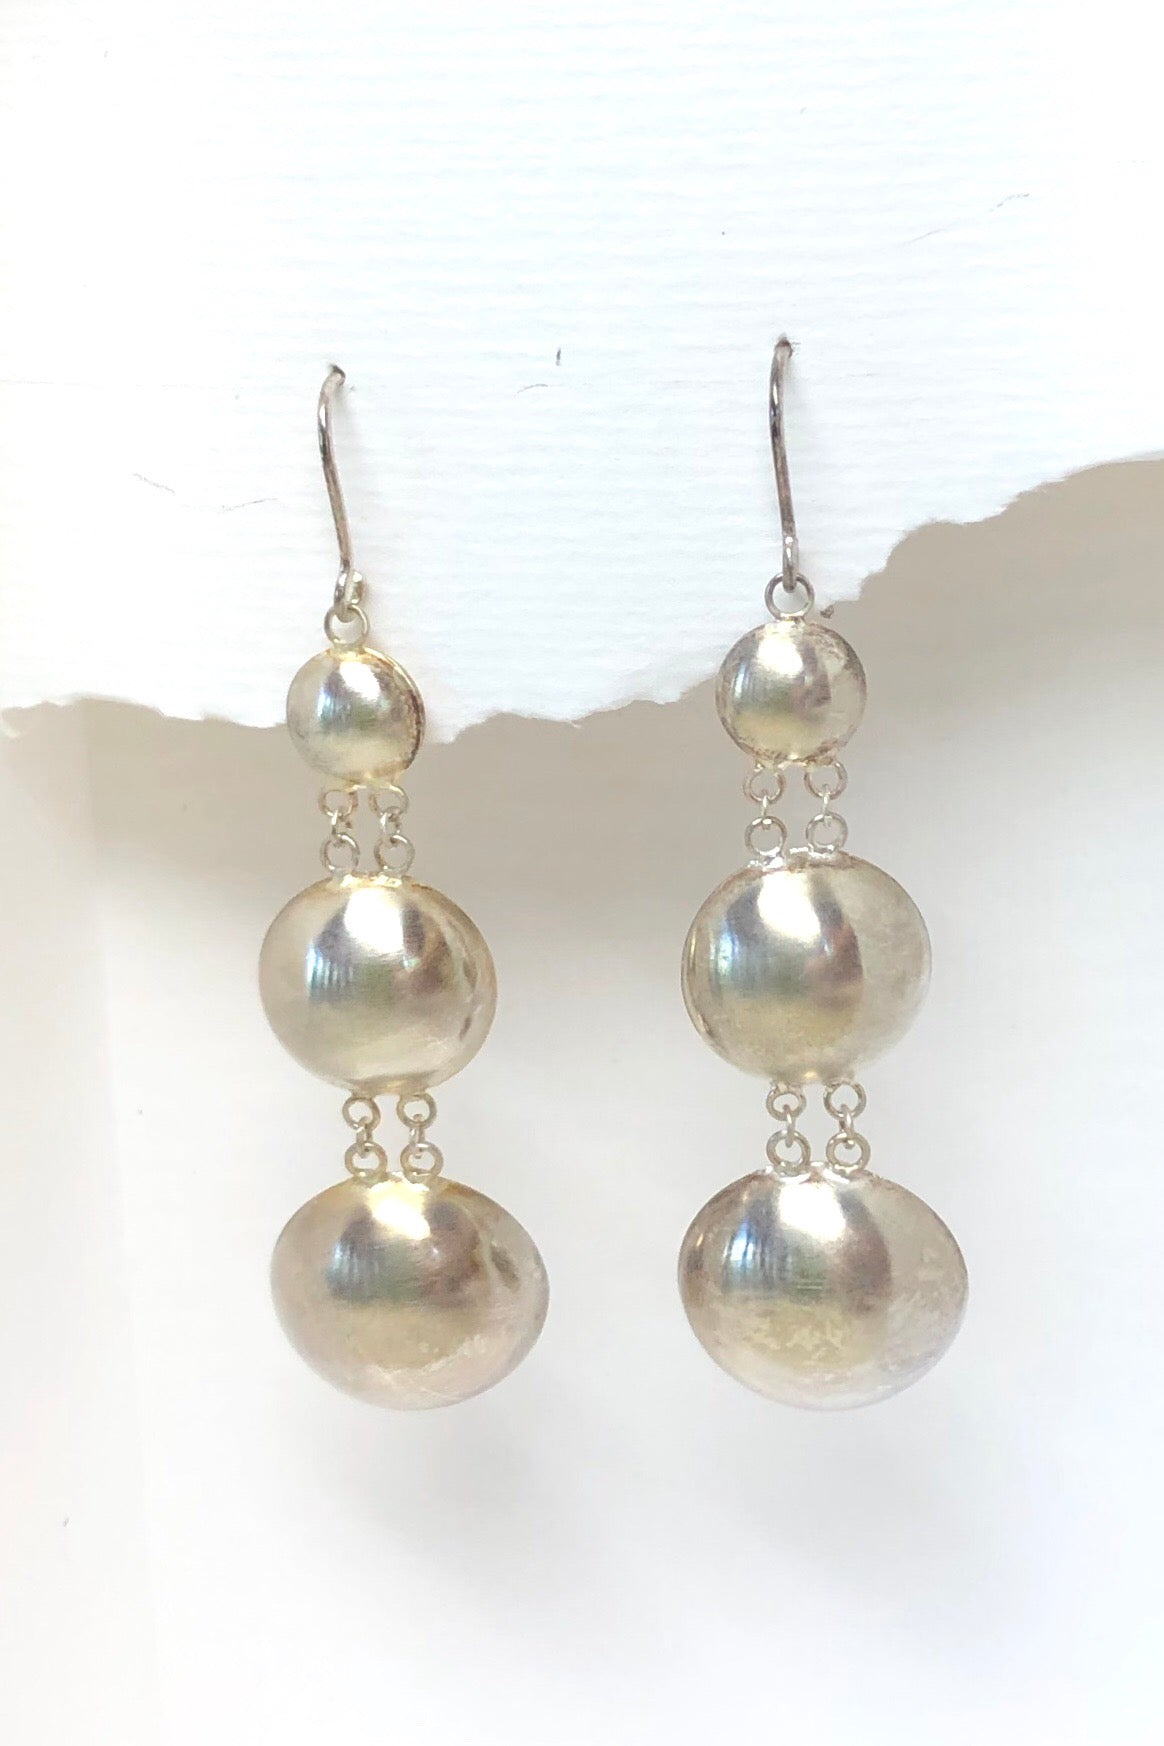 silver earrings in dome shape